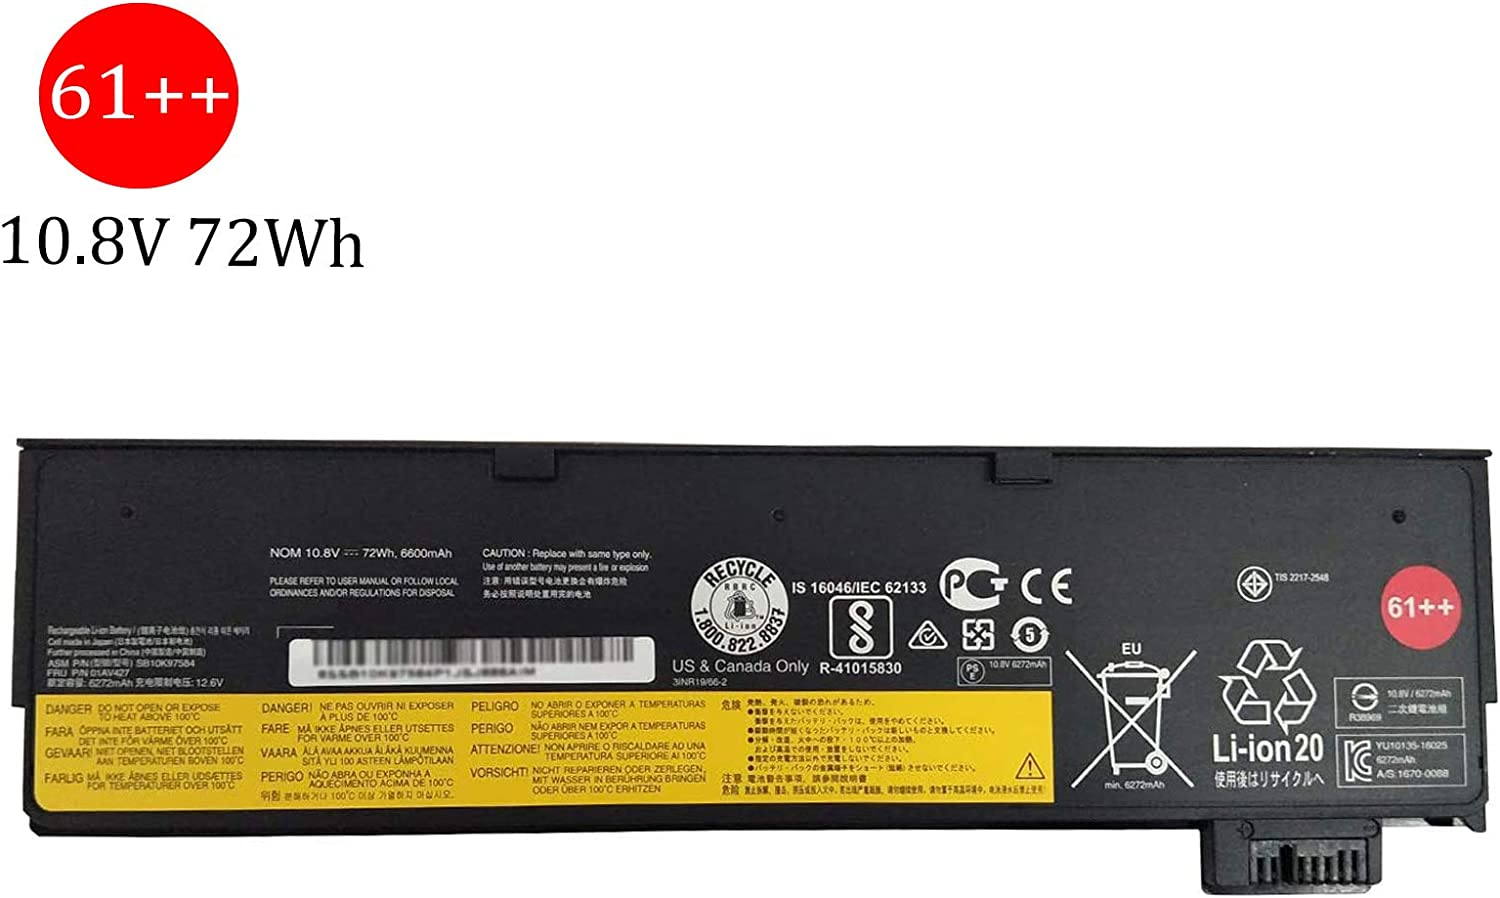 BOWEIRUI SB10K97585 (11.25V 72Wh 6320mAh) Laptop Battery Replacement for Lenovo ThinkPad TP25 P52S P51S T470 T570 T480 T580 Series 61++ 01AV492 01AV427 4X50M08812 01AV428 SB10K97584 61++